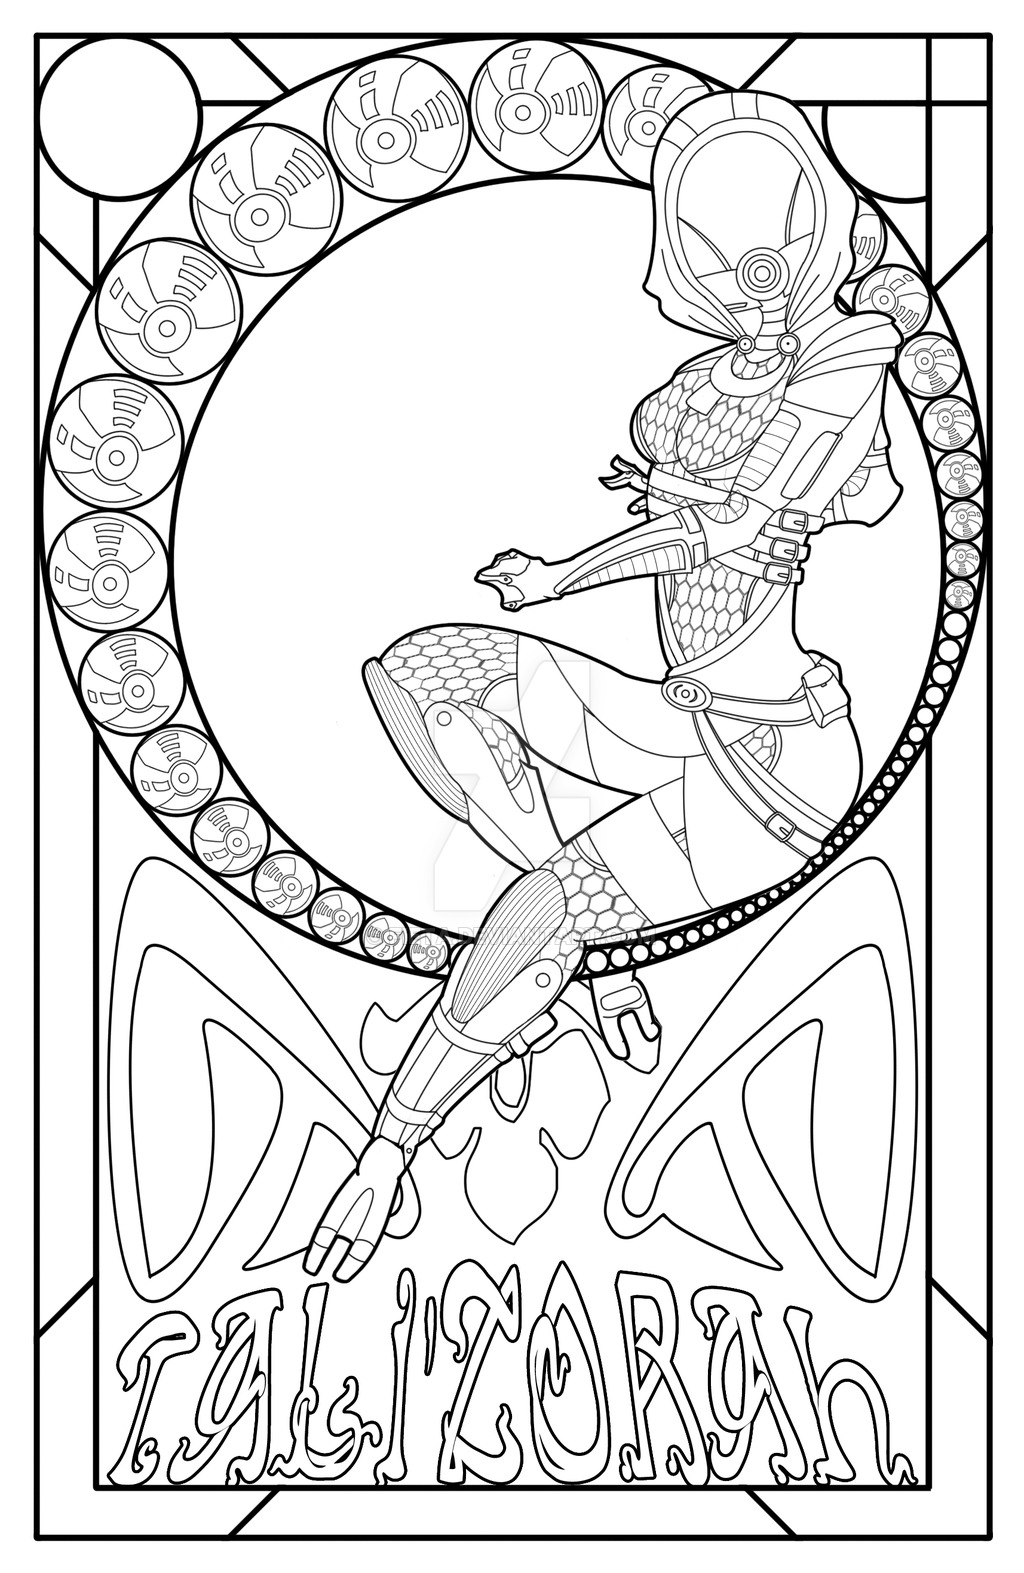 art nouveau drawing at getdrawings com free for personal use art